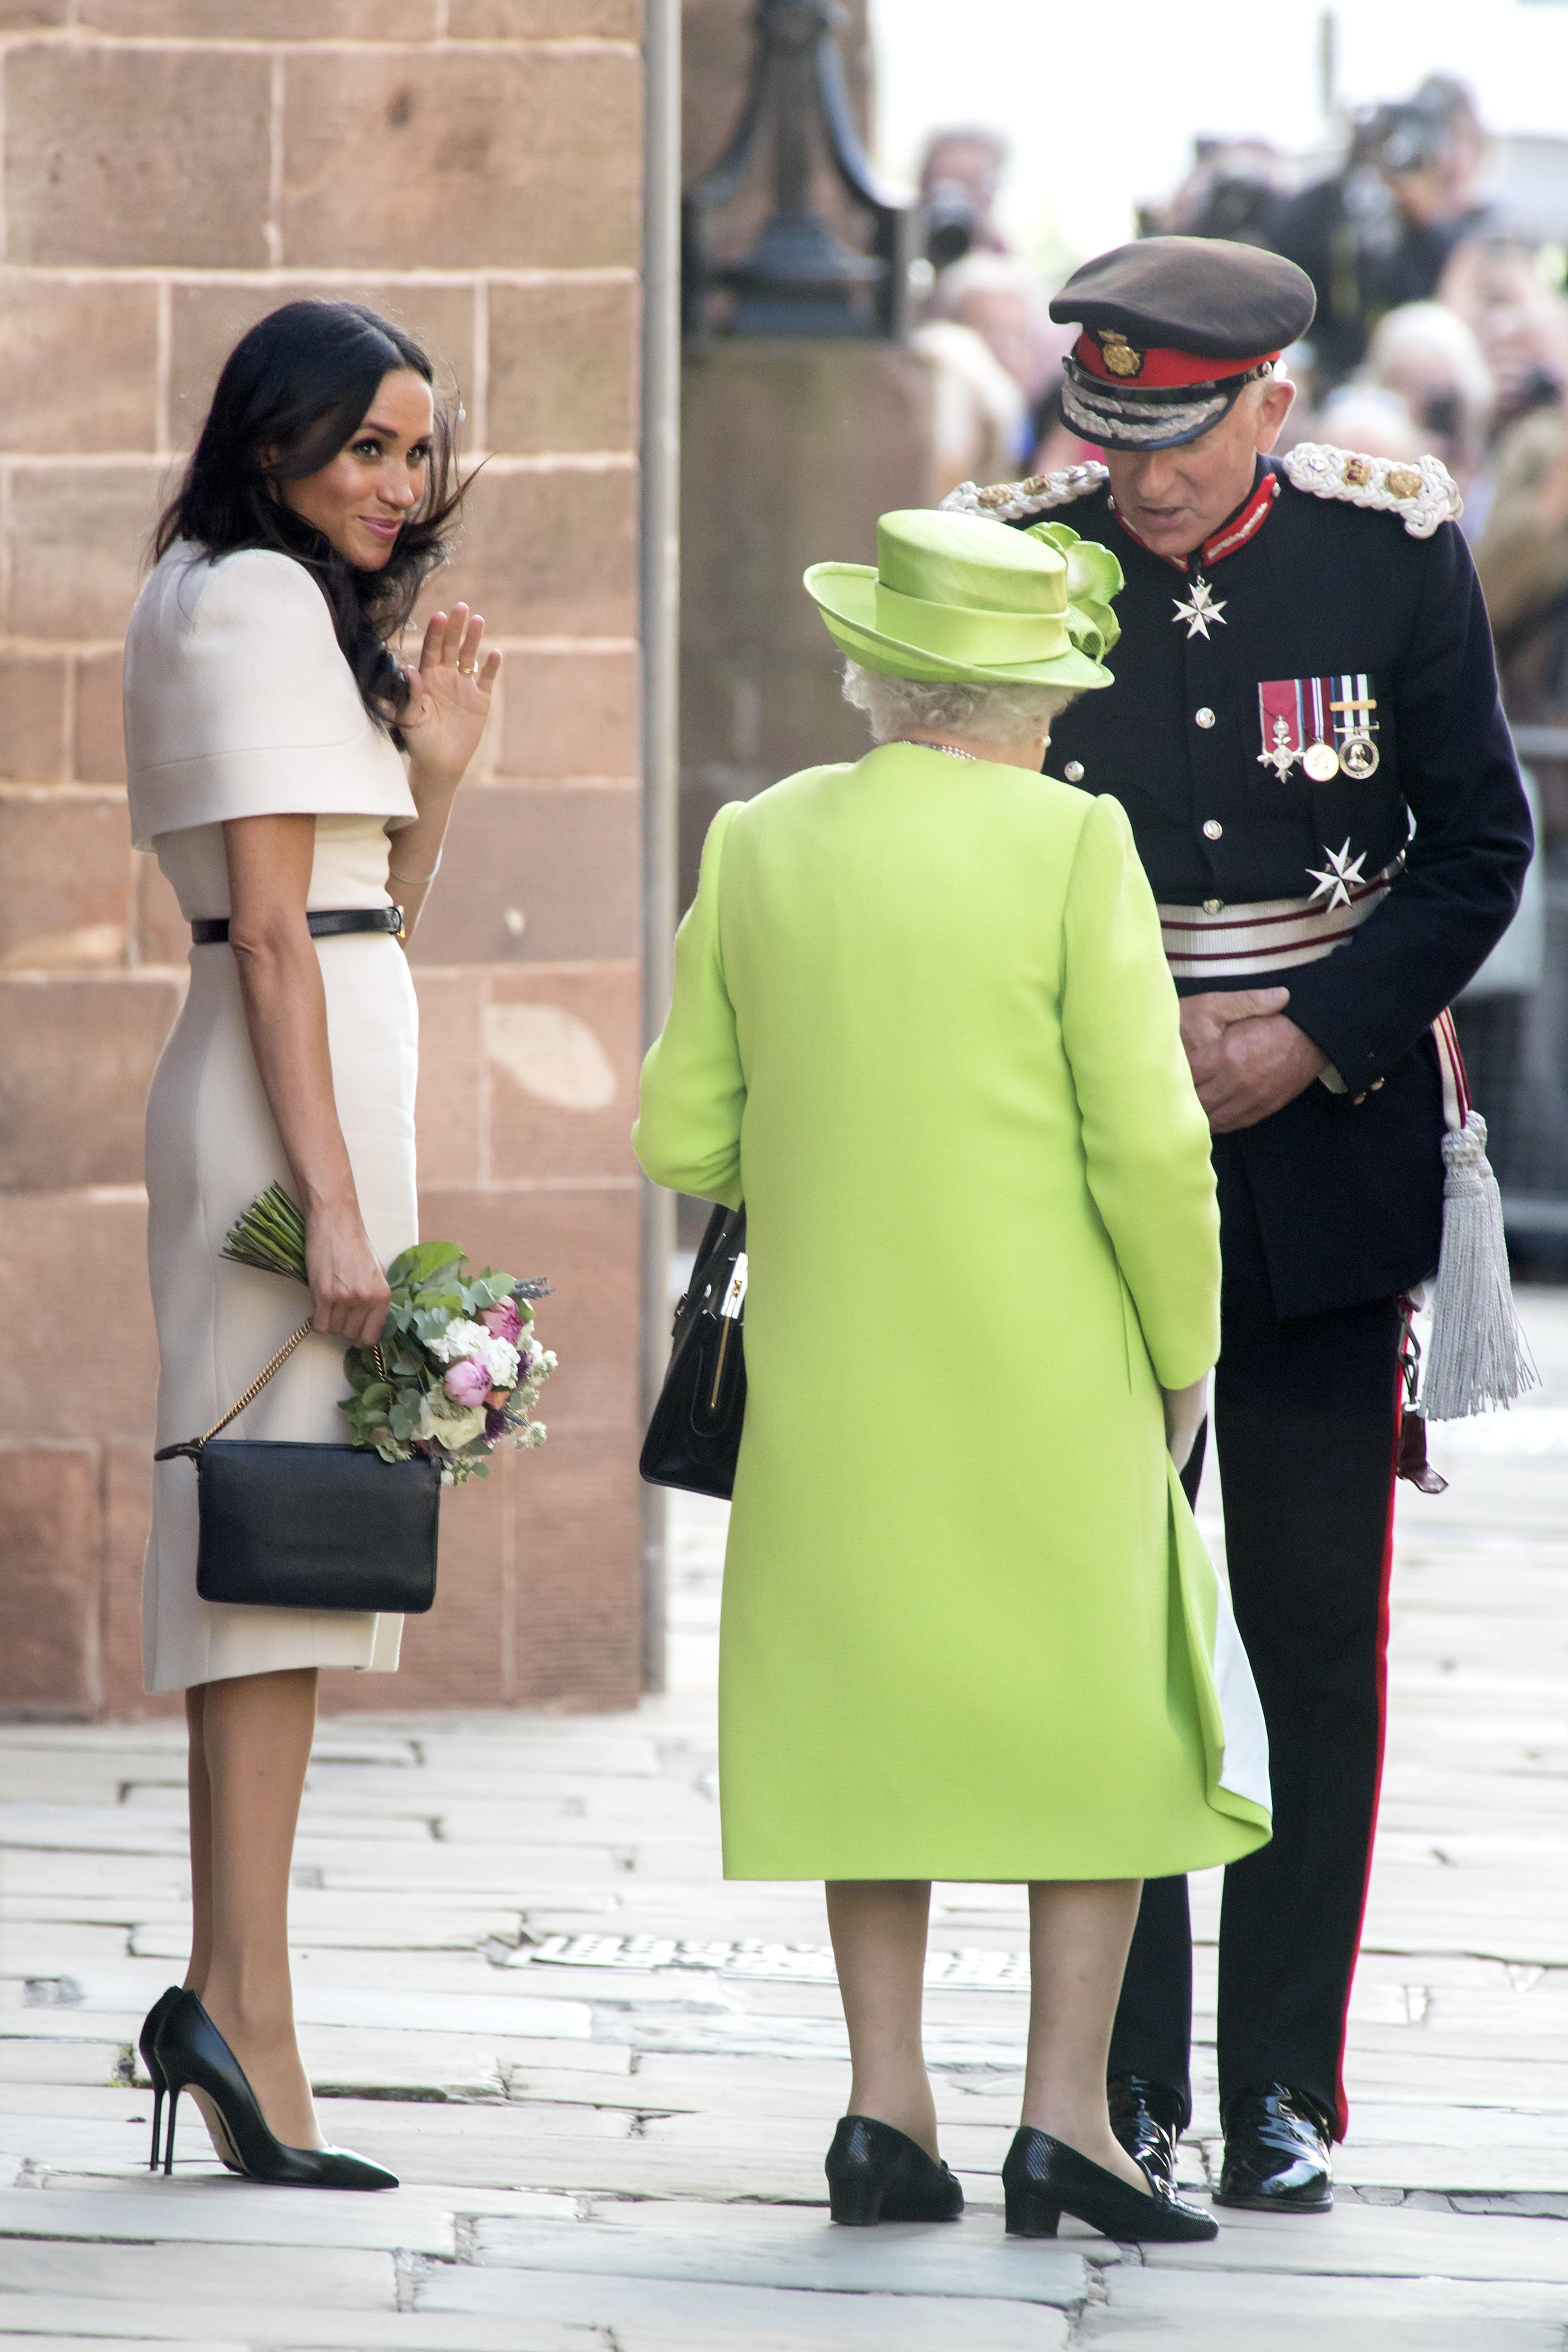 Meghan Markle S Shoes On Ireland Tour Stop Cost This Much